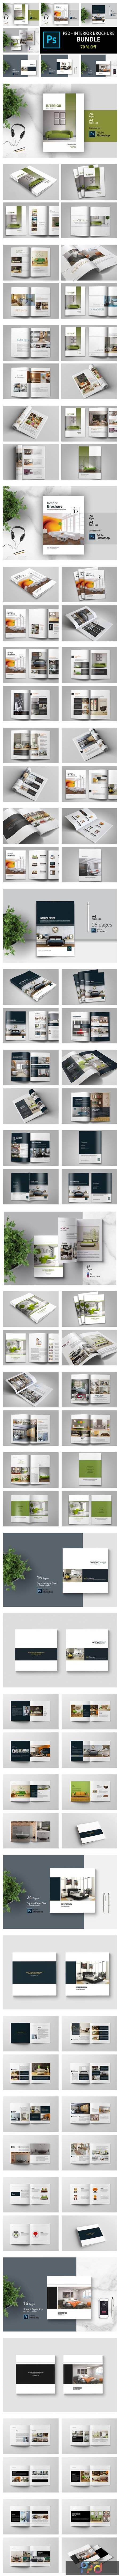 PSD Interior Brochure BUNDLE 4617268 1